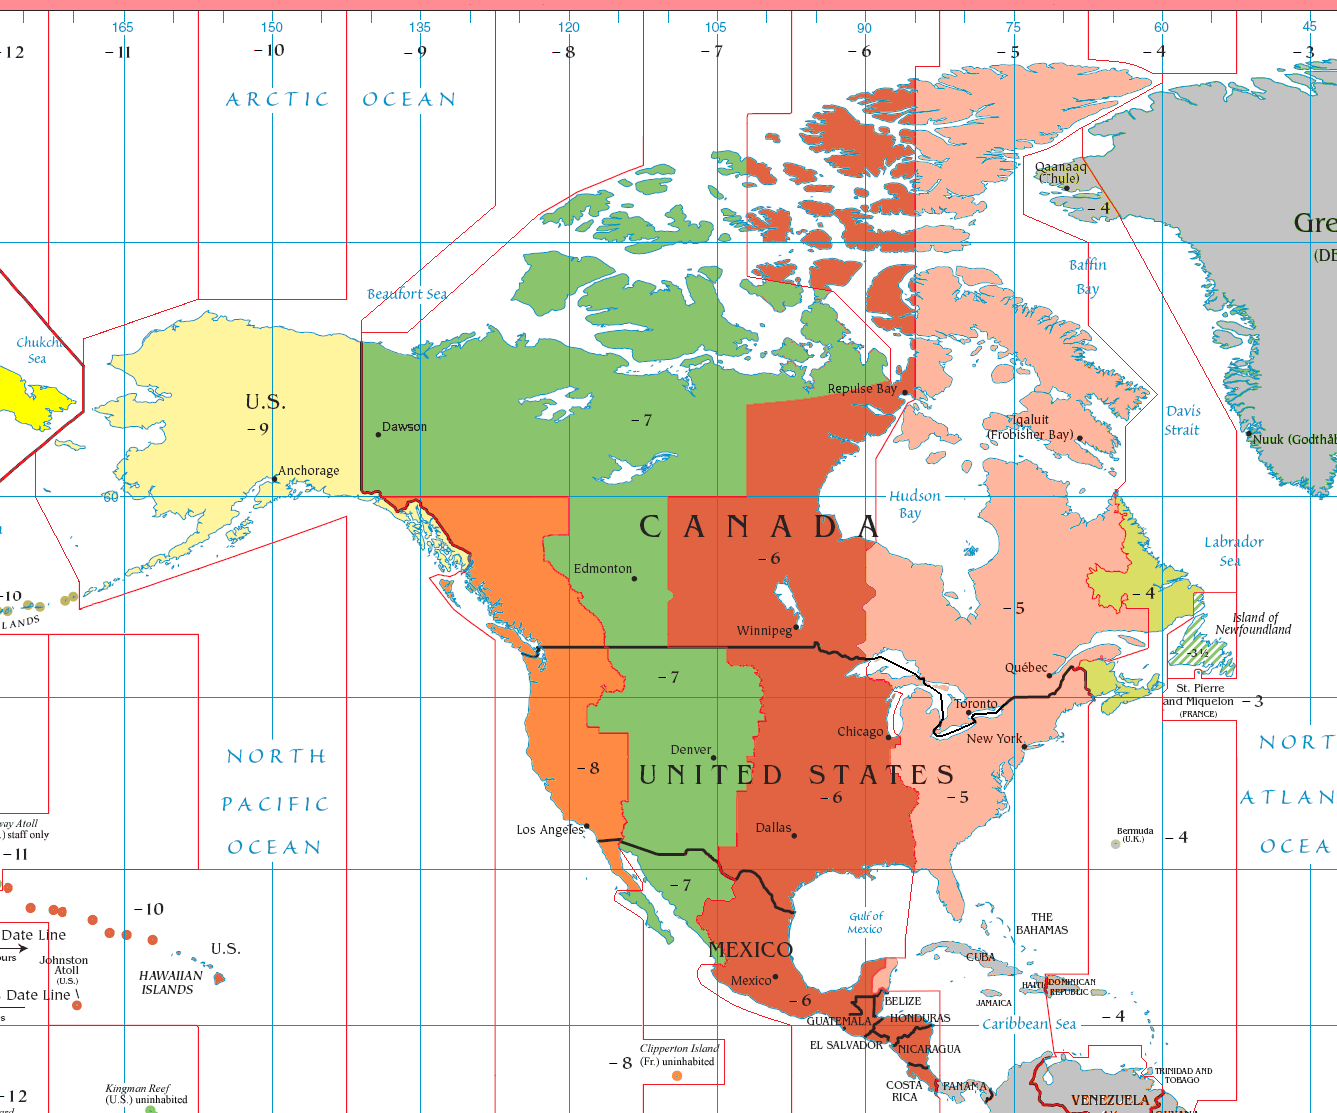 Time Zones in North America